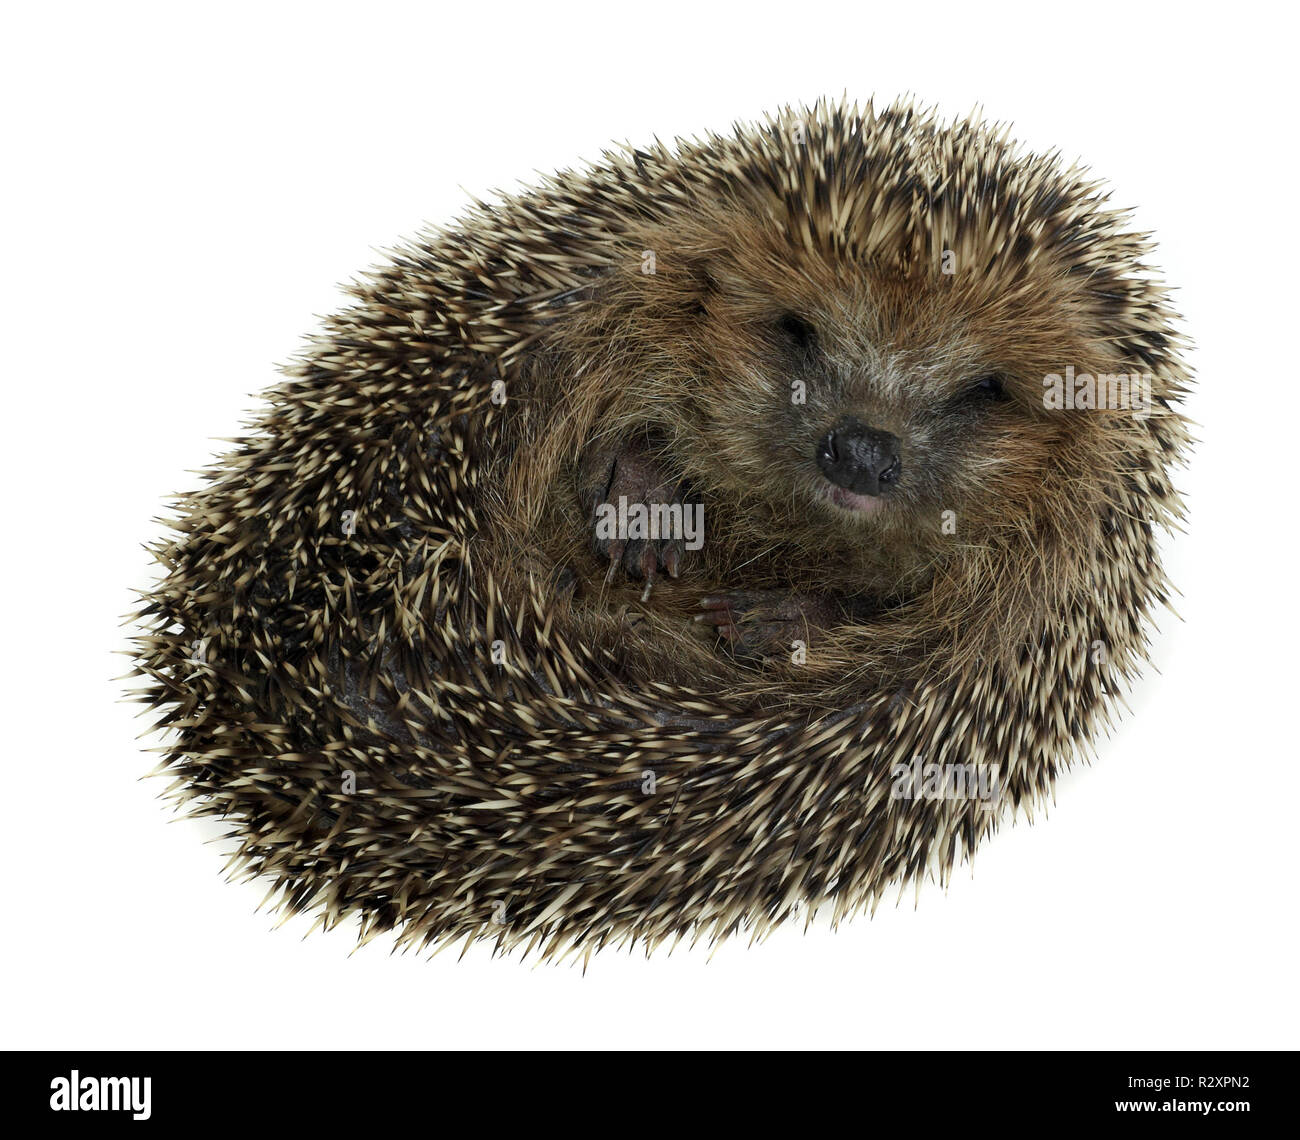 rolled-up hedgehog in white back - Stock Image